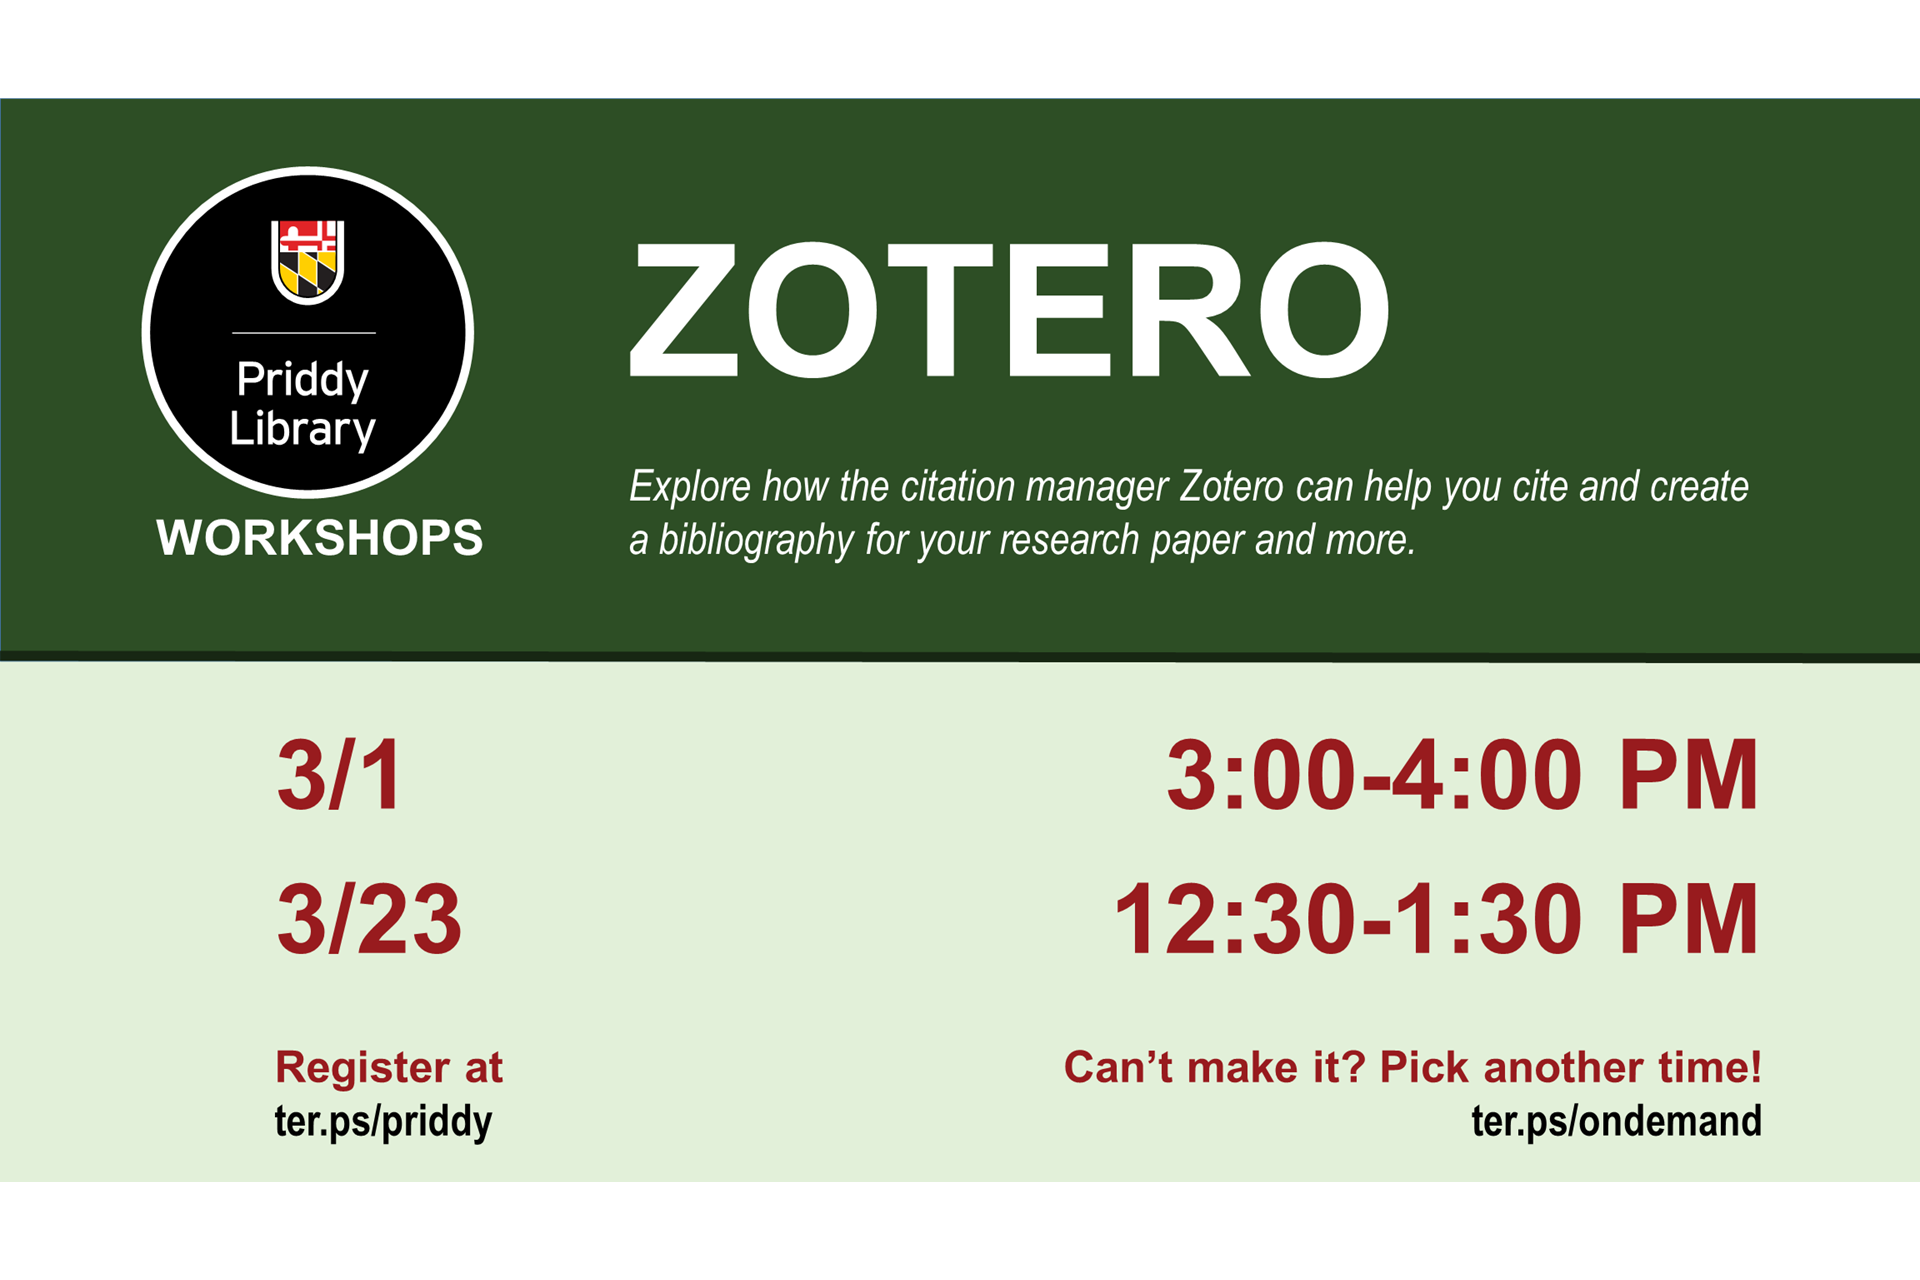 Zotero workshop flyer